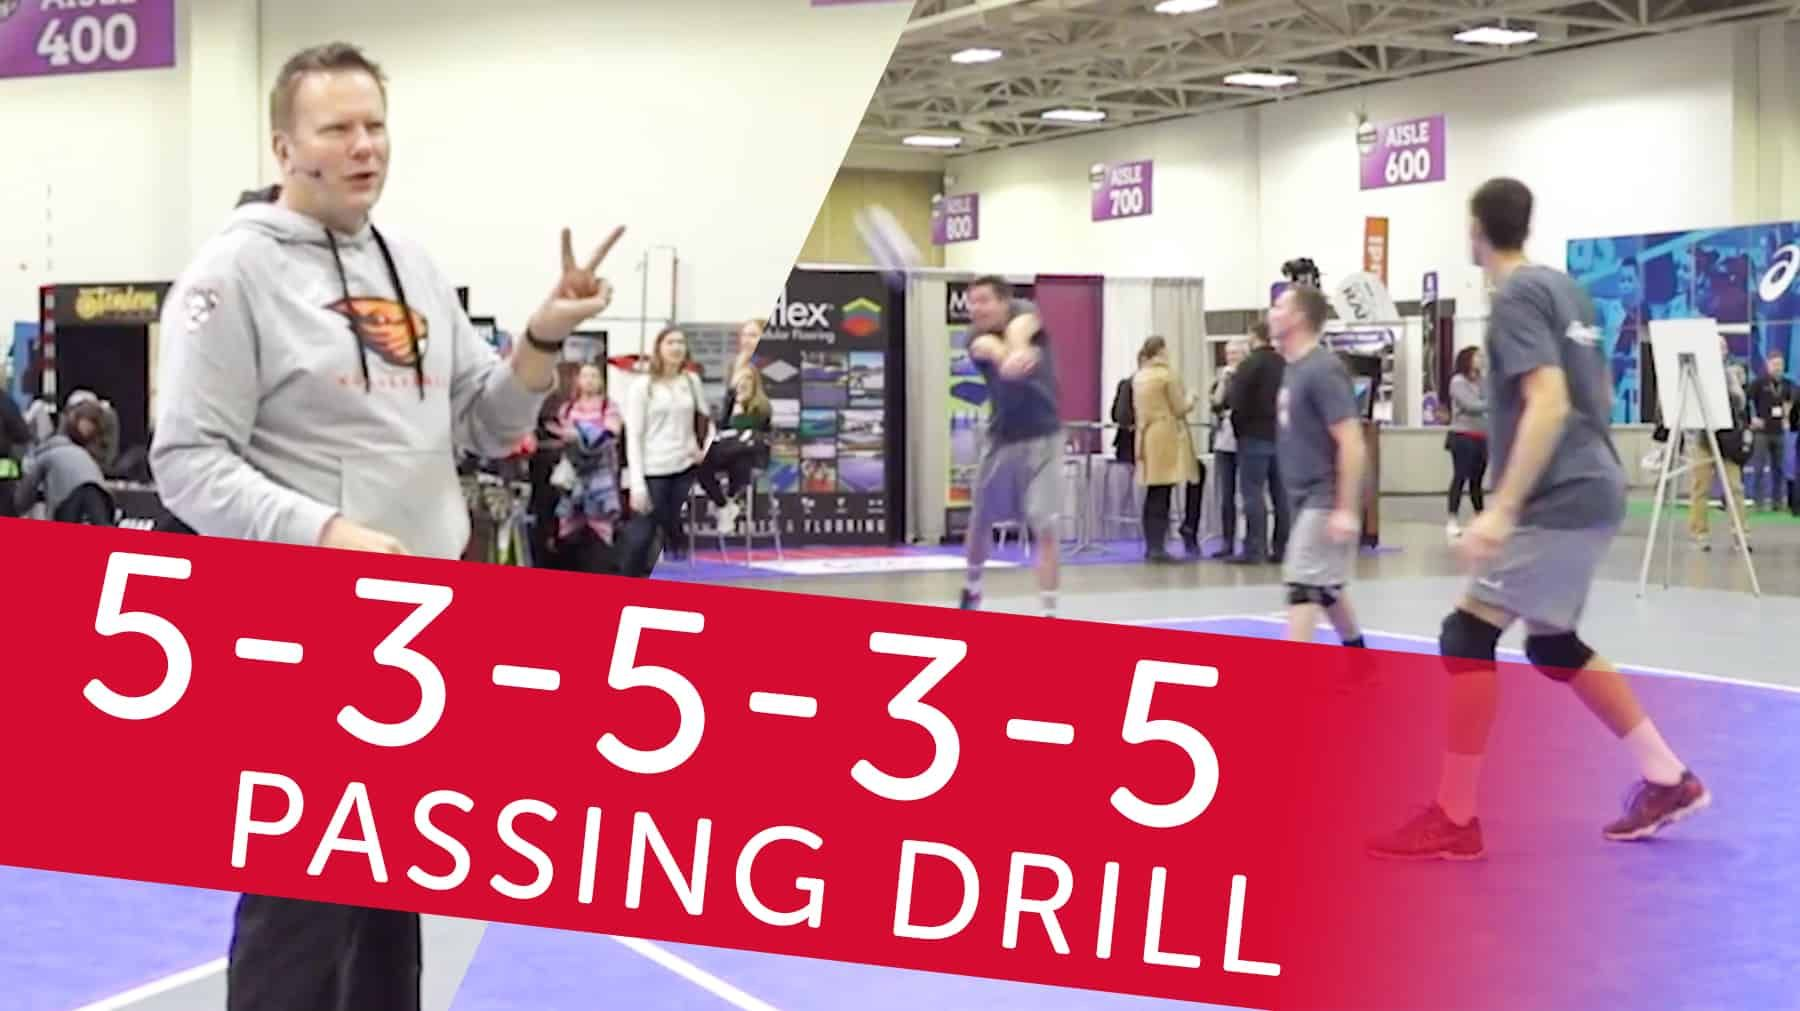 5 3 5 3 5 Passing Drill Coaching Volleyball Passing Drills Volleyball Drills